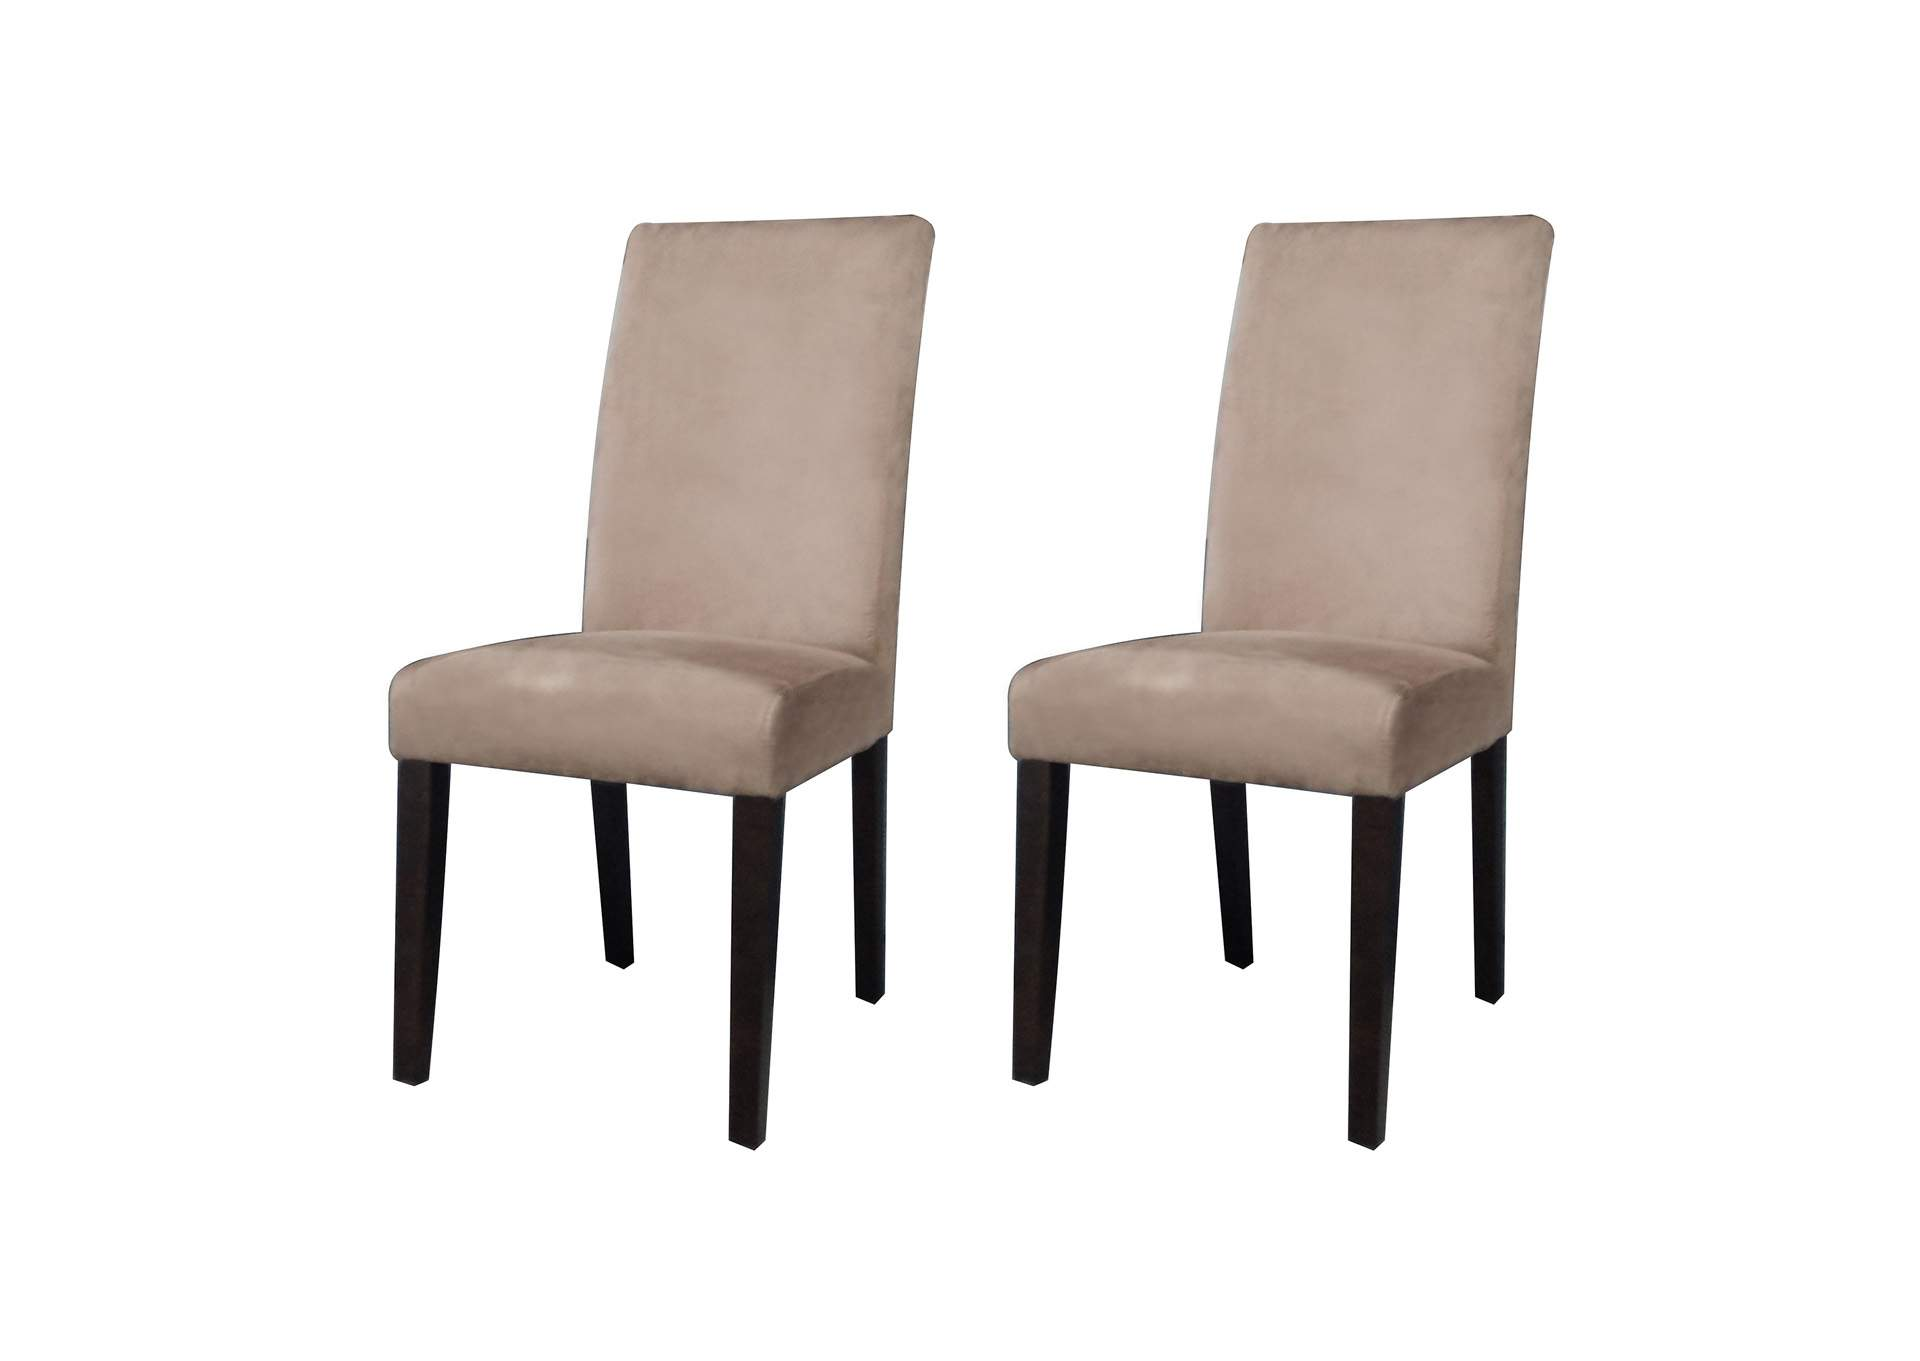 Maria Satin Espresso Parson Side Chair (Set of 2),Chintaly Imports